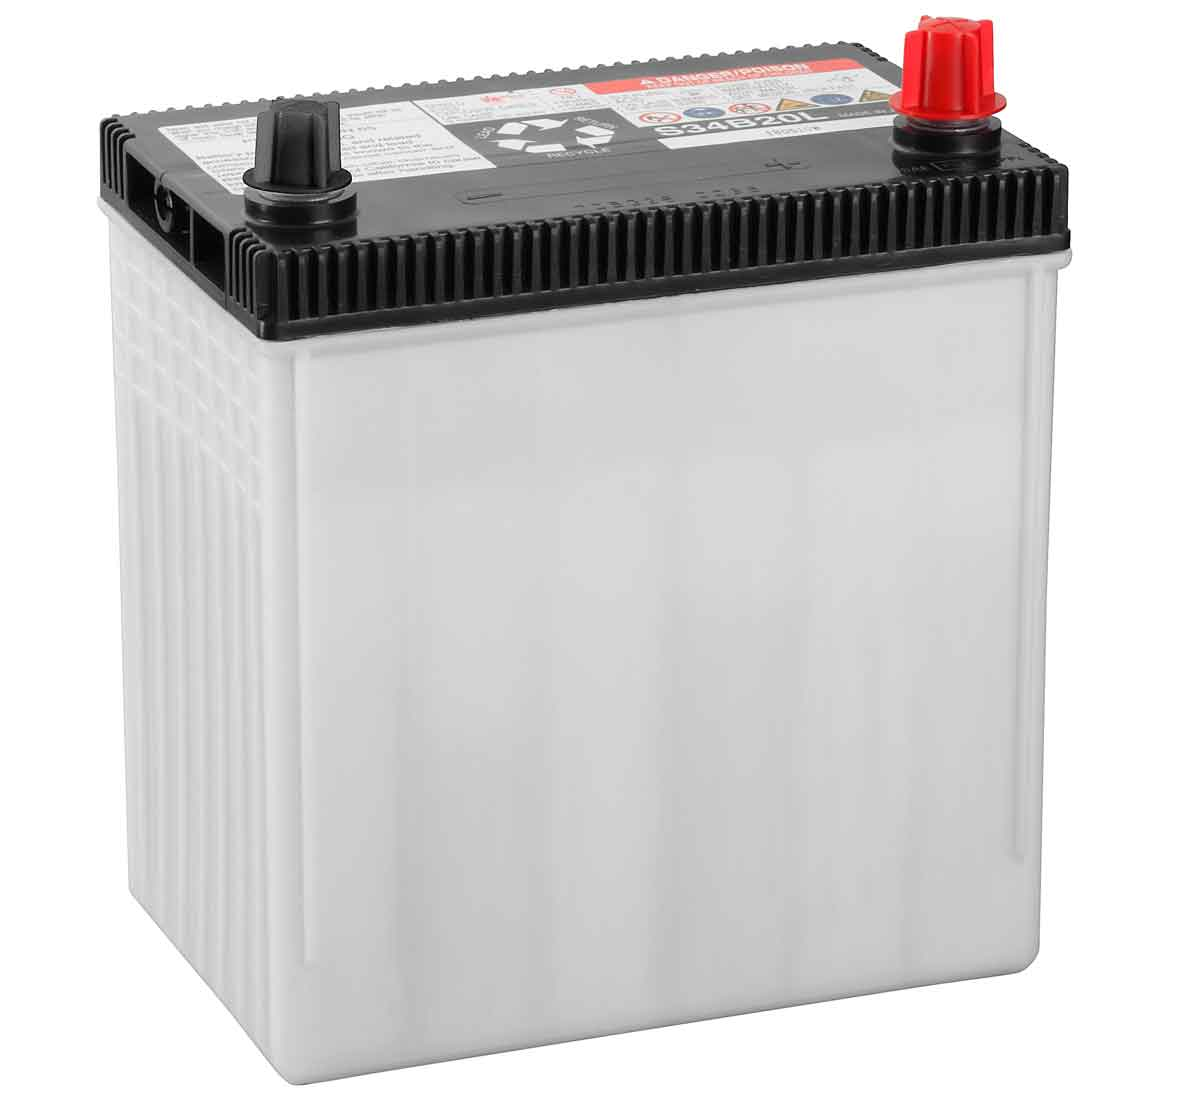 Yuasa HJ-S34B20L JIS B20 12V AGM Car Battery